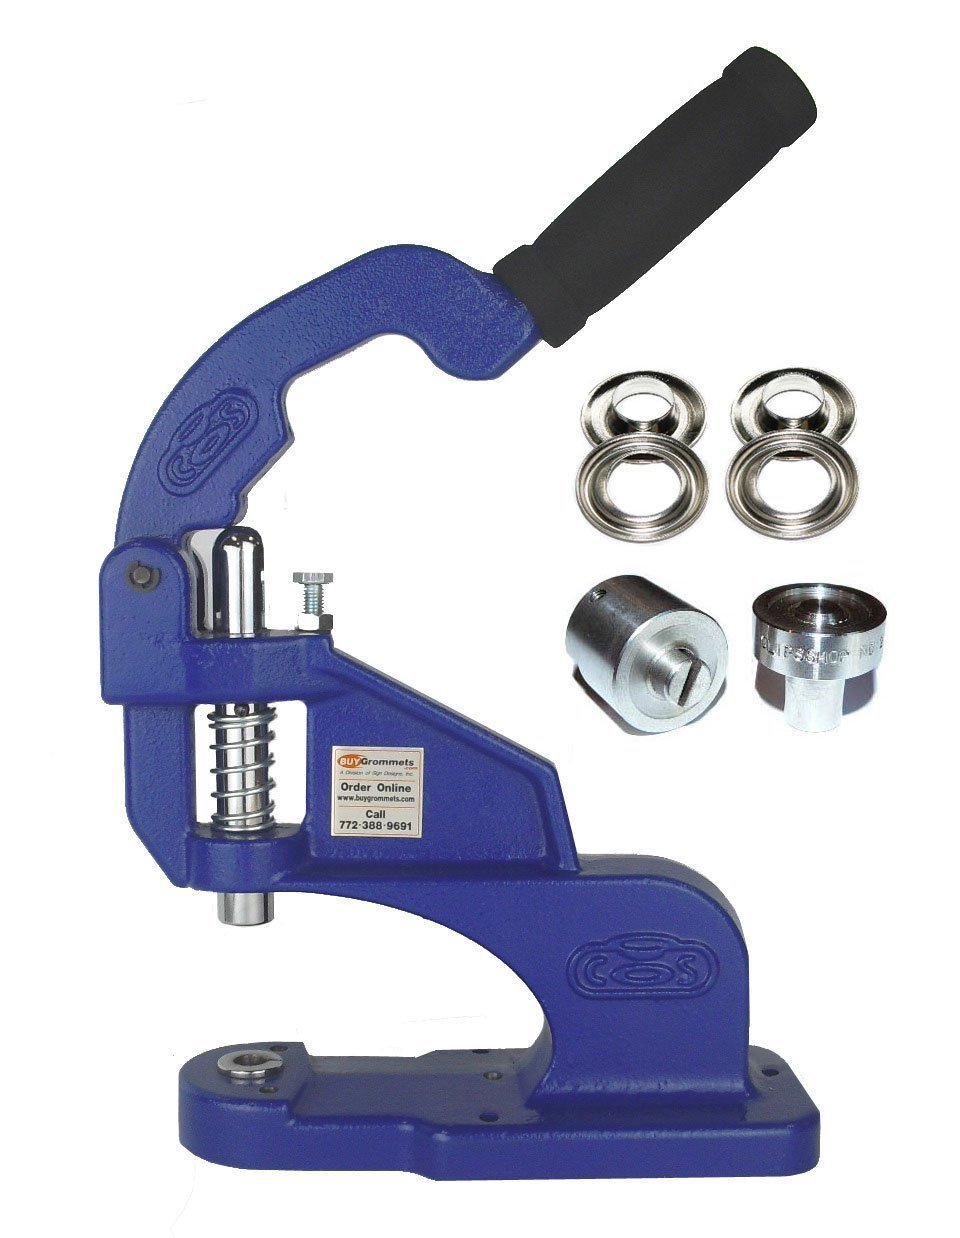 ClipsShop CSTEP-2 Grommet Machine Complete Kit Includes #2 3/8'' Nickel Grommets Qty 500 & #2 3/8'' Stainless Steel Die Set